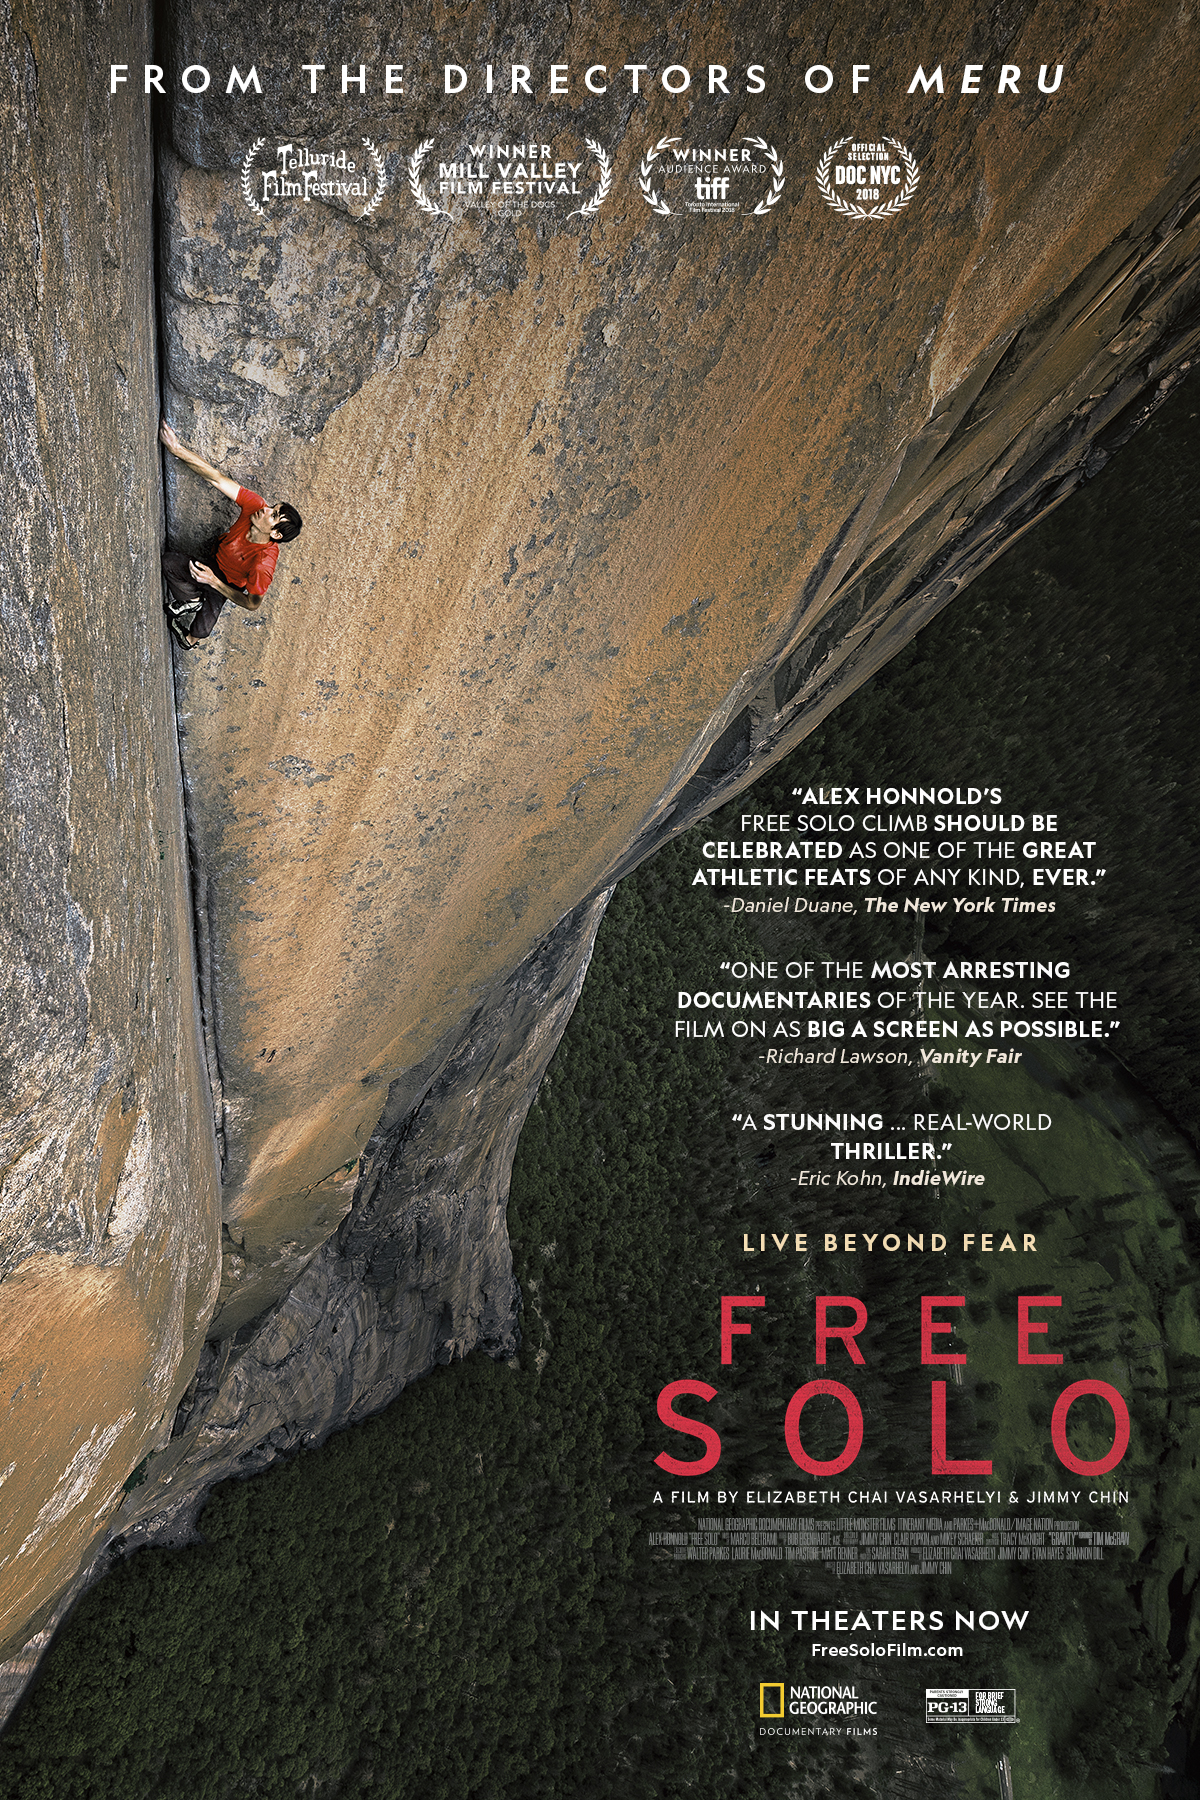 Free Solo Film Poster